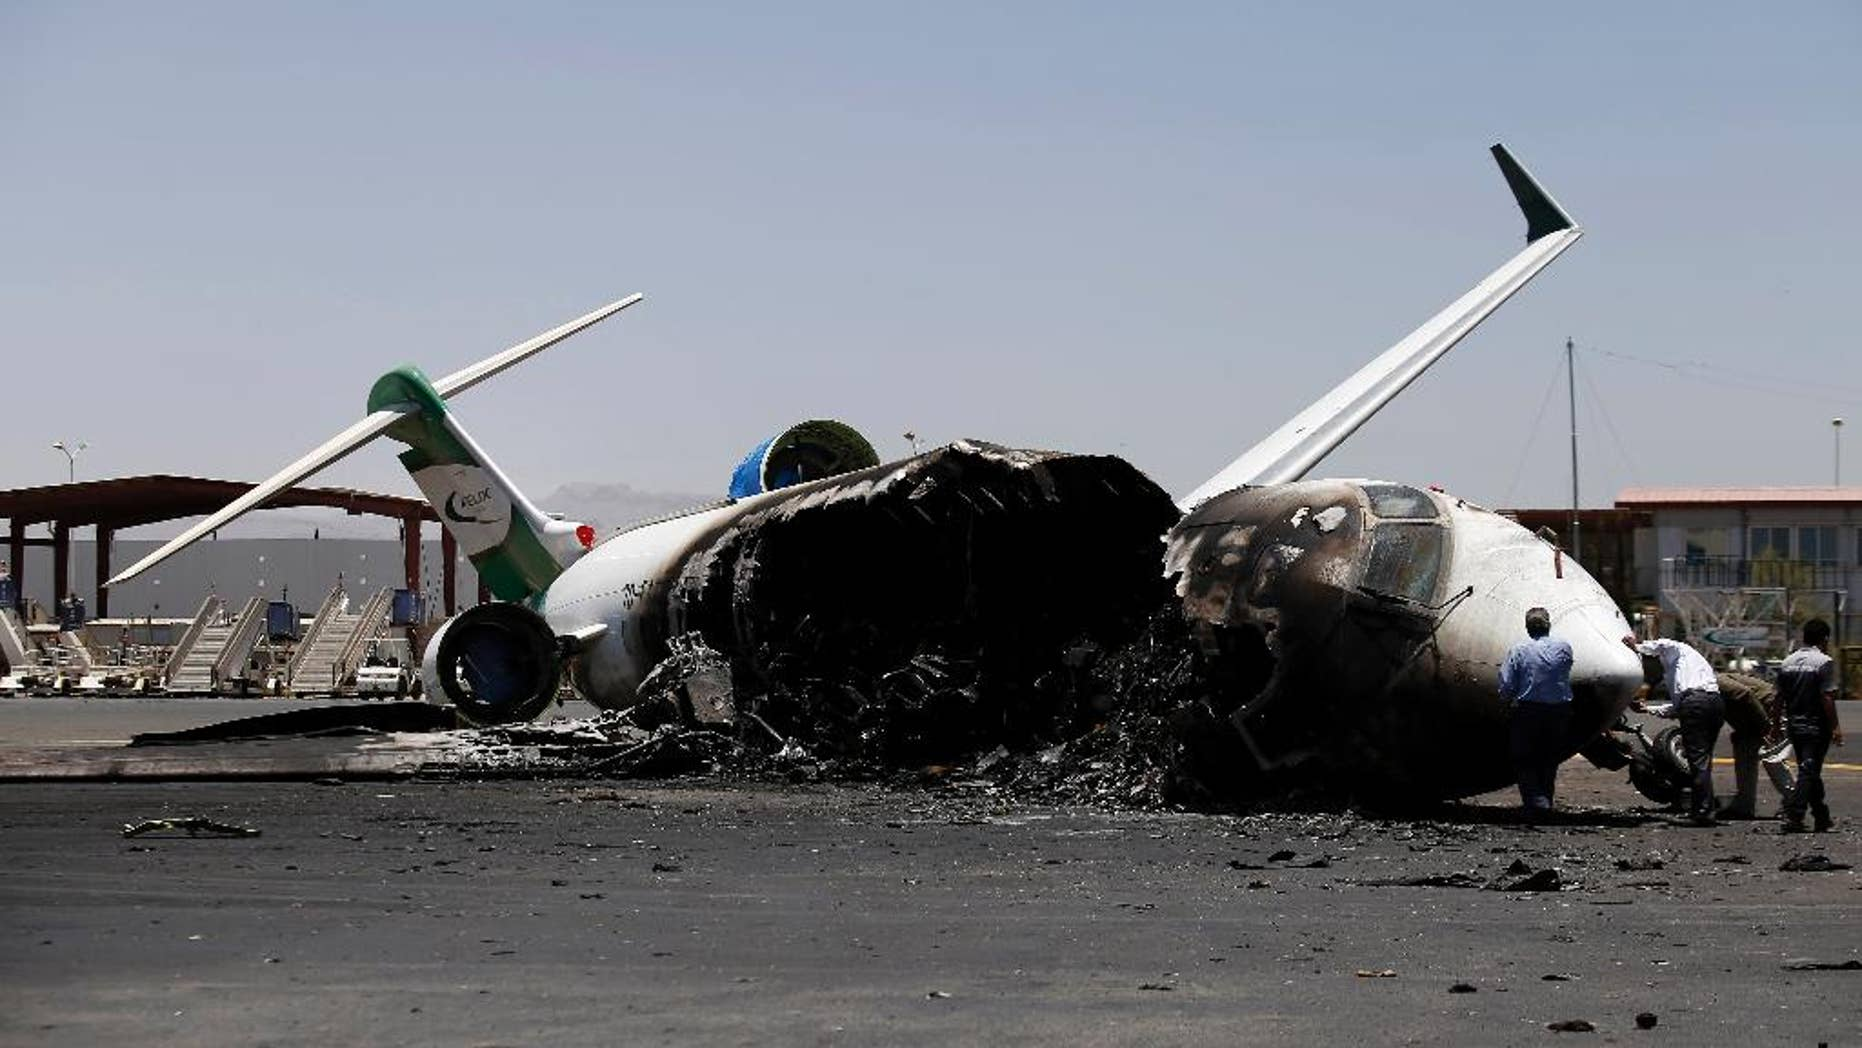 Officials of Felix Airways, a domestic airline, inspect a plane destroyed by Saudi-led airstrikes, at the Sanaa International airport, in Yemen, Wednesday, April 29, 2015. Saudi-led coalition warplanes pounded Shiite rebels and their allies overnight and throughout the day on Tuesday in the Yemeni capital. Around midday, airstrikes hit Sanaa International airport, setting a plane owned by a private company on fire, according to a statement released by the Shiite rebels, known as Houthis. (AP Photo/Hani Mohammed)